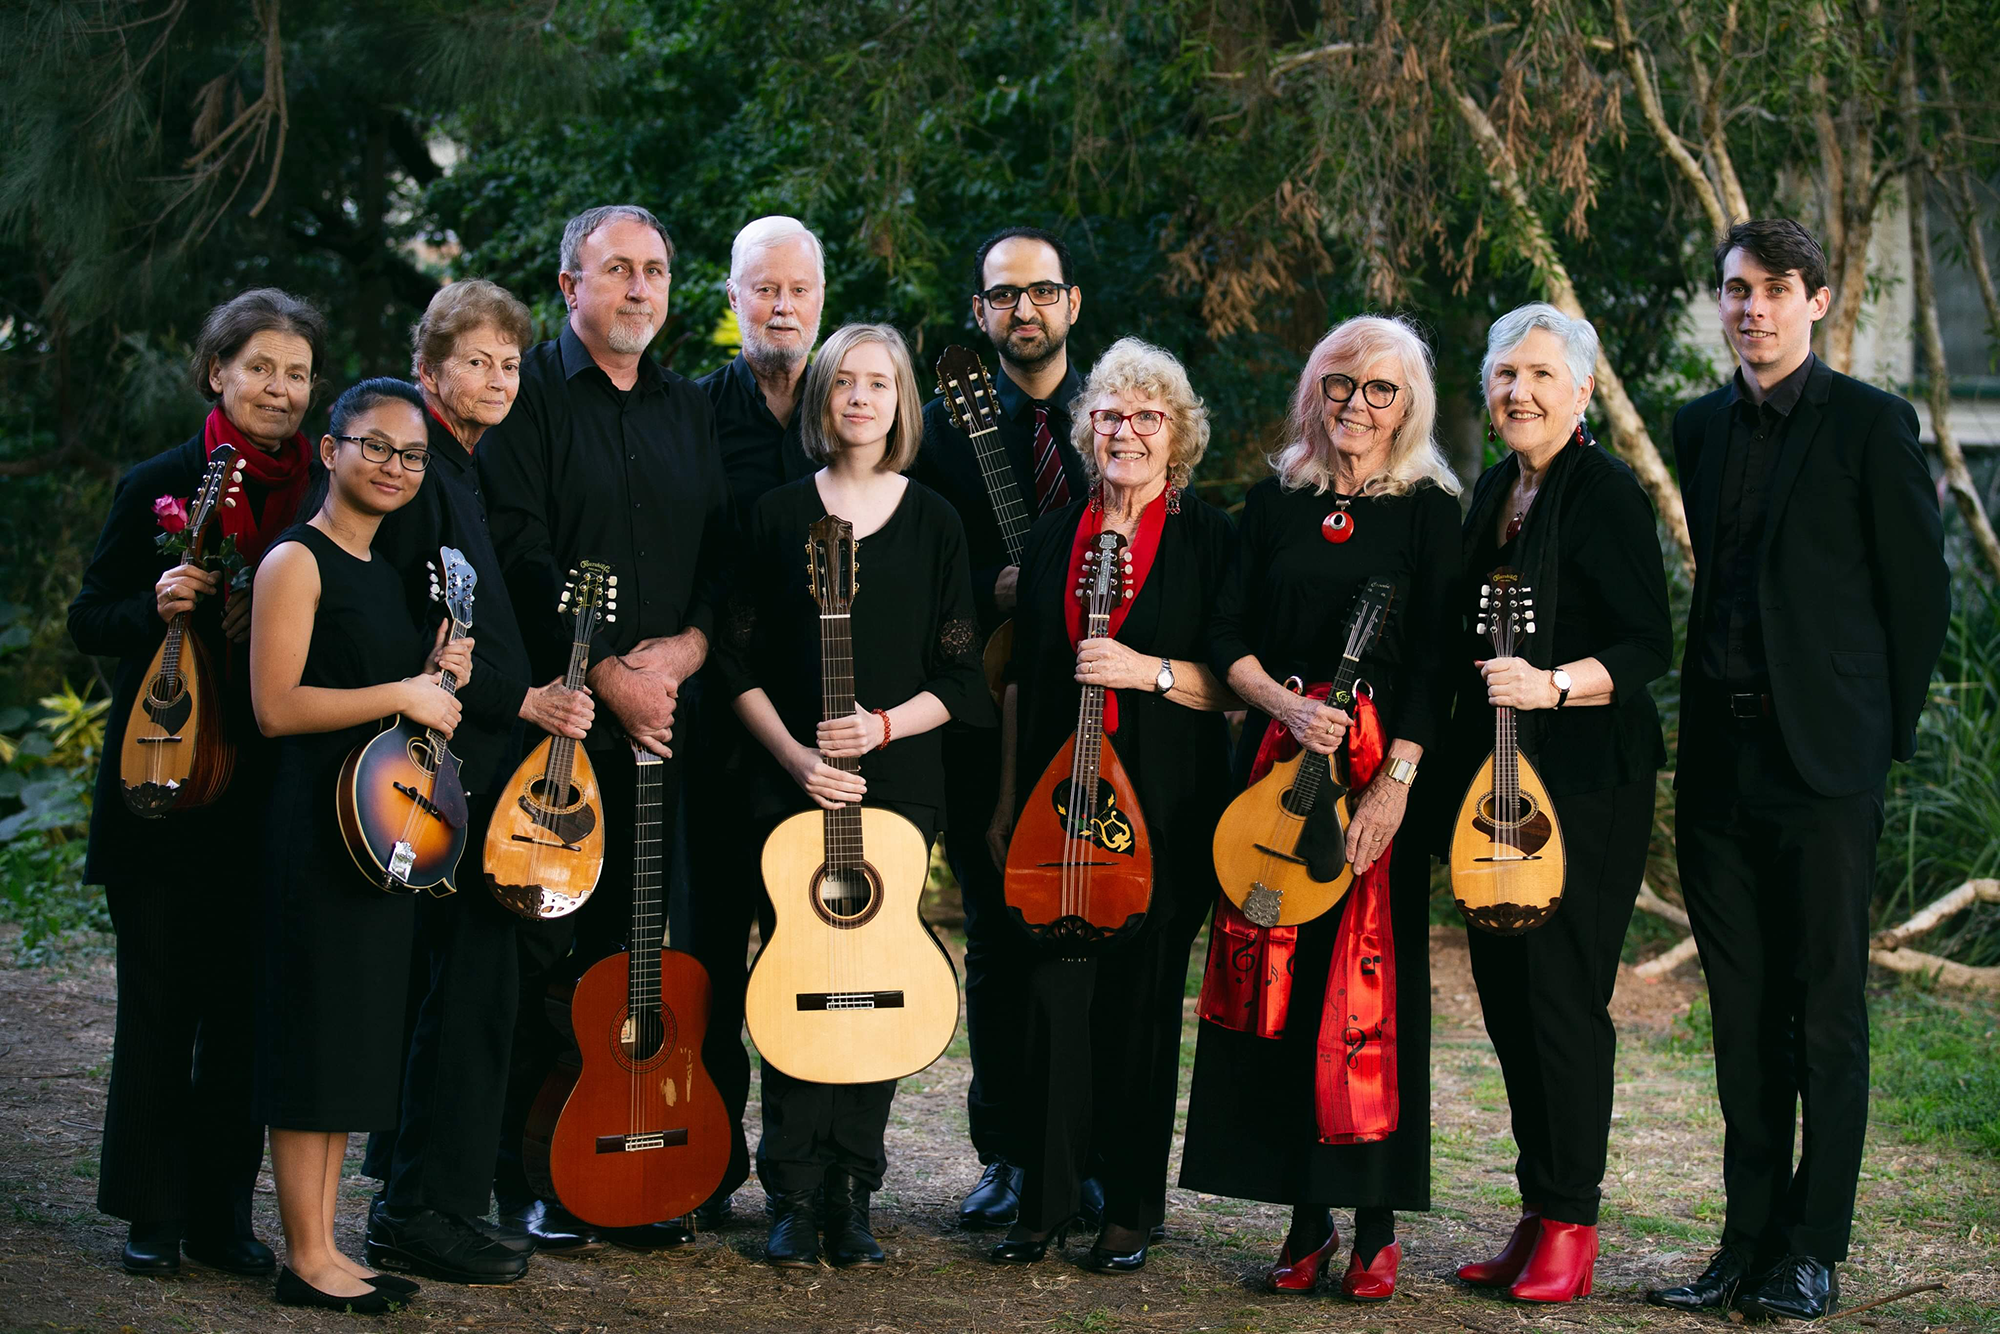 Photo of 11 musicians holding instruments standing in front of trees